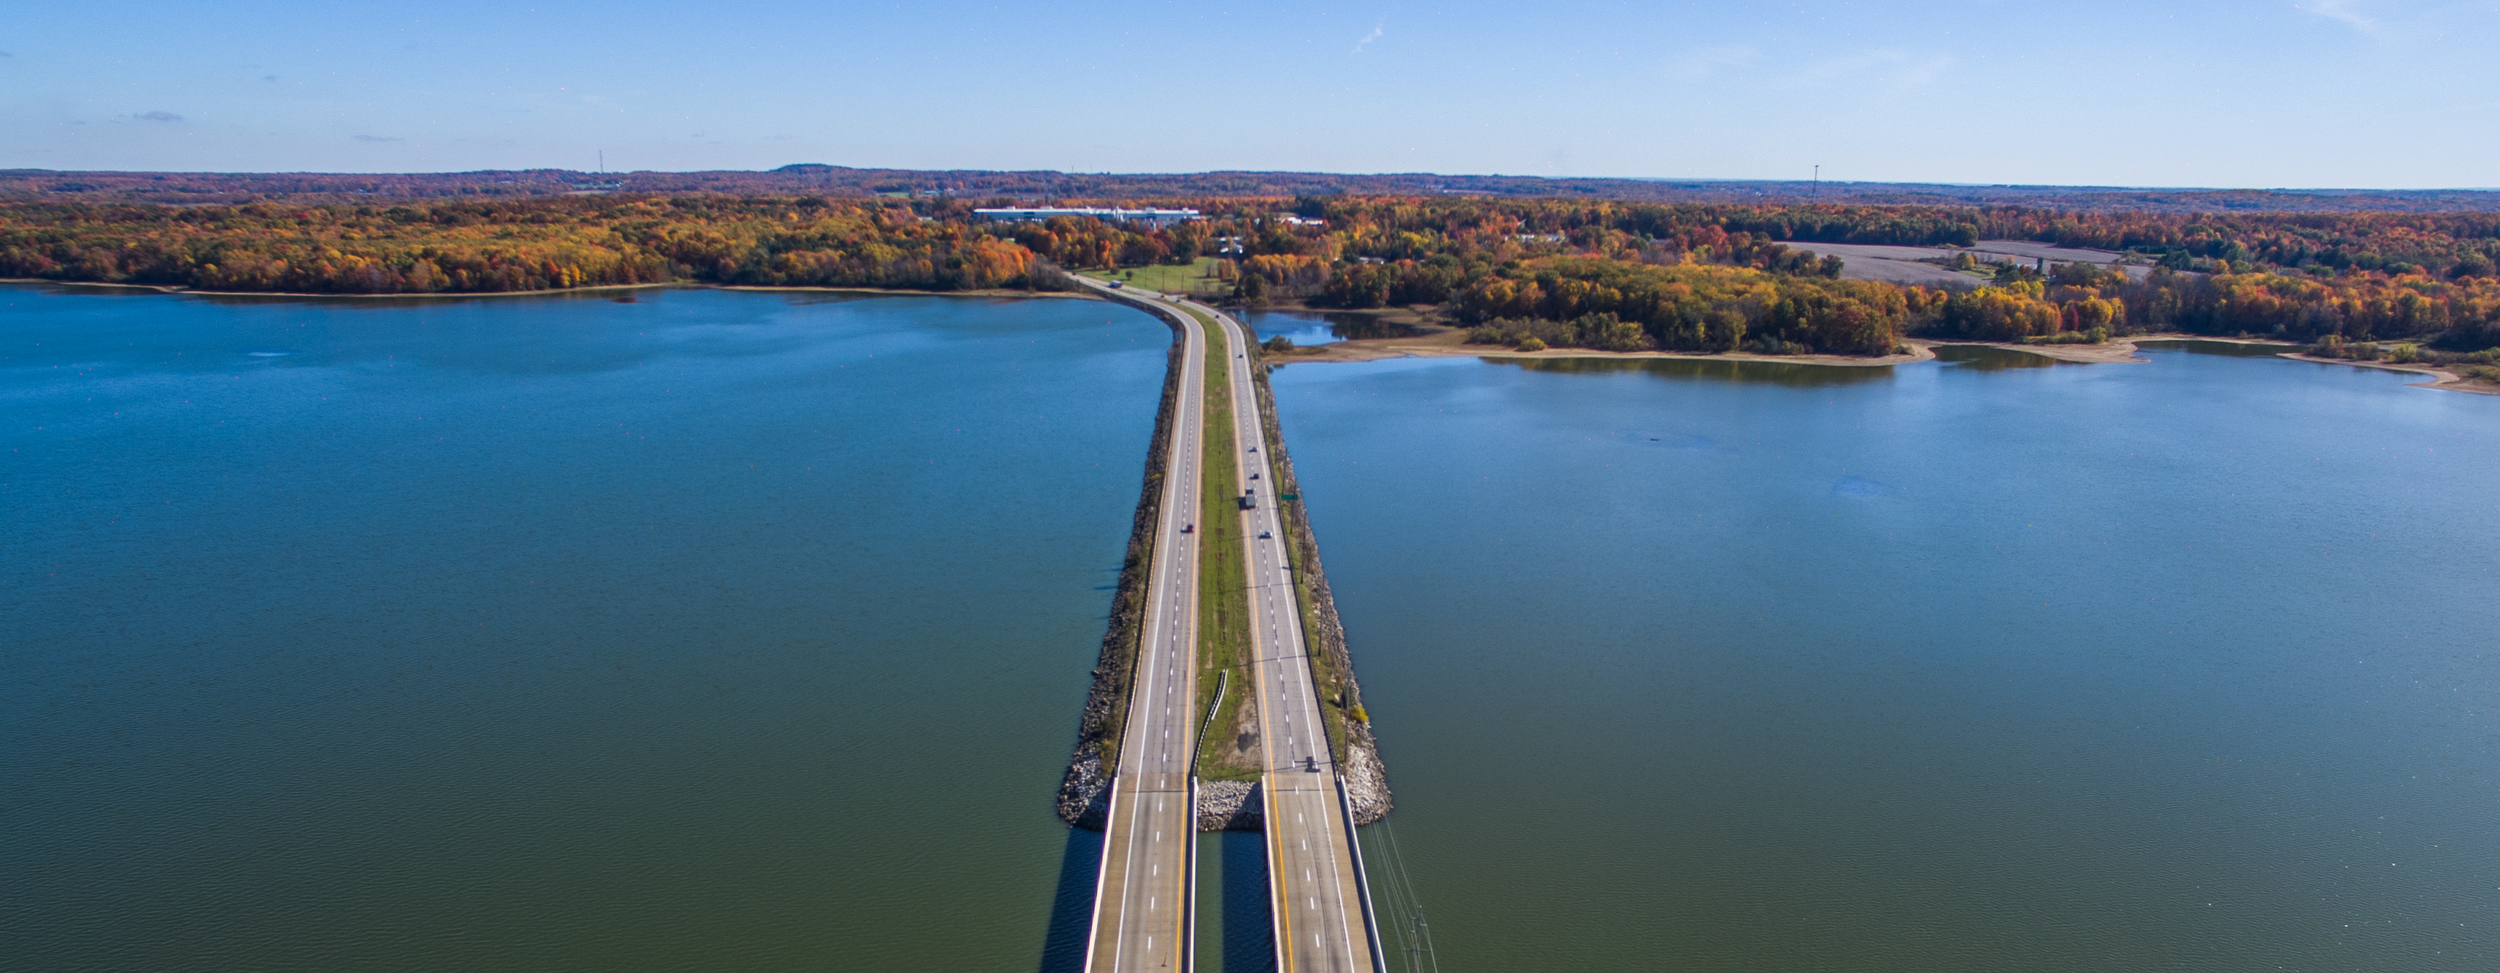 Ladue Reservoir in Geauga County